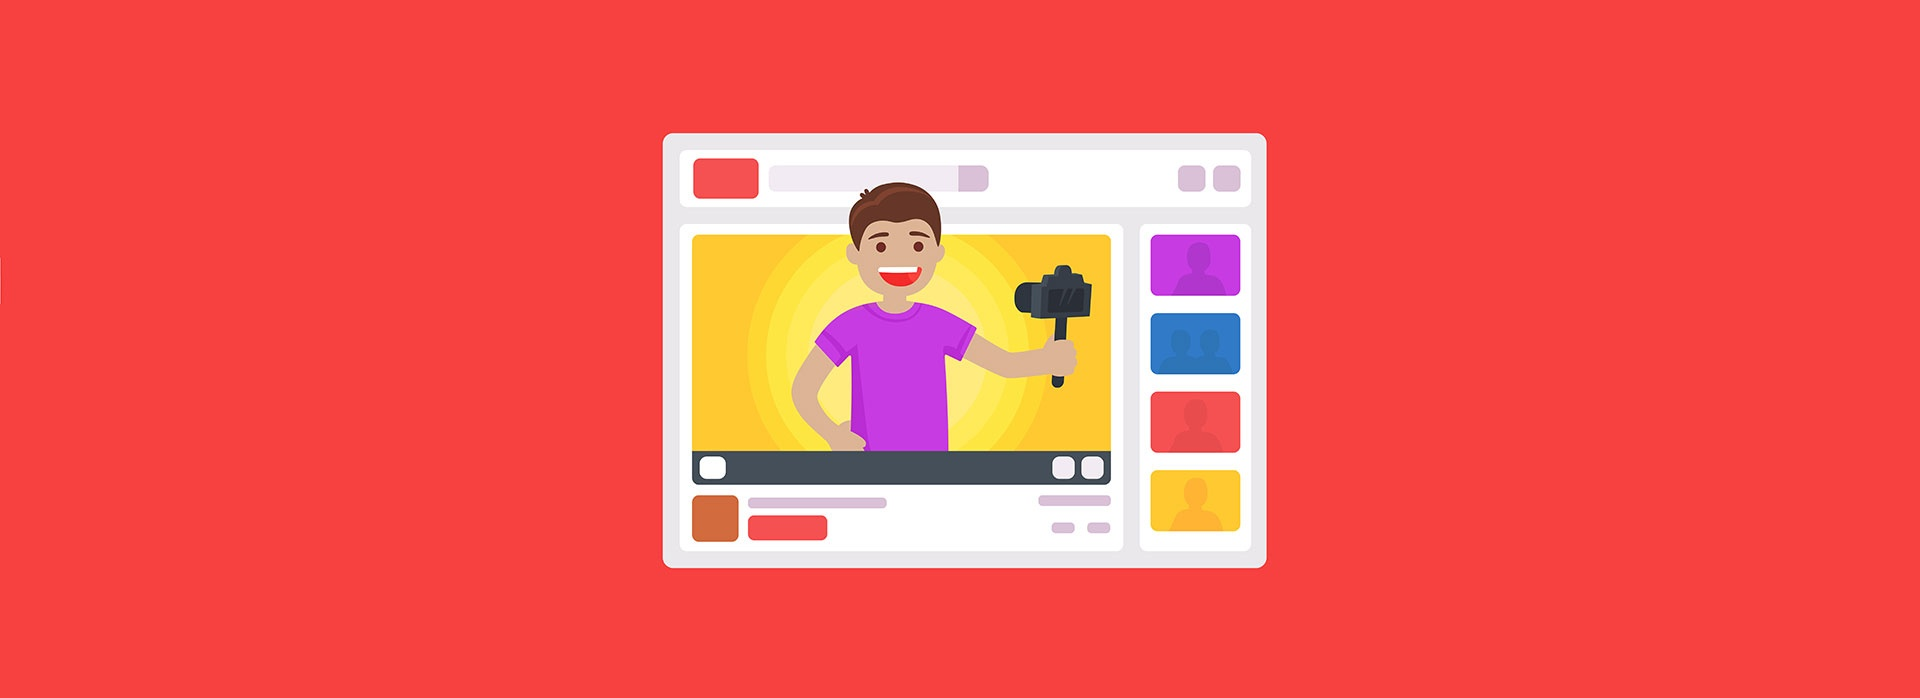 How to Make Awesome YouTube Videos for Your Small Business